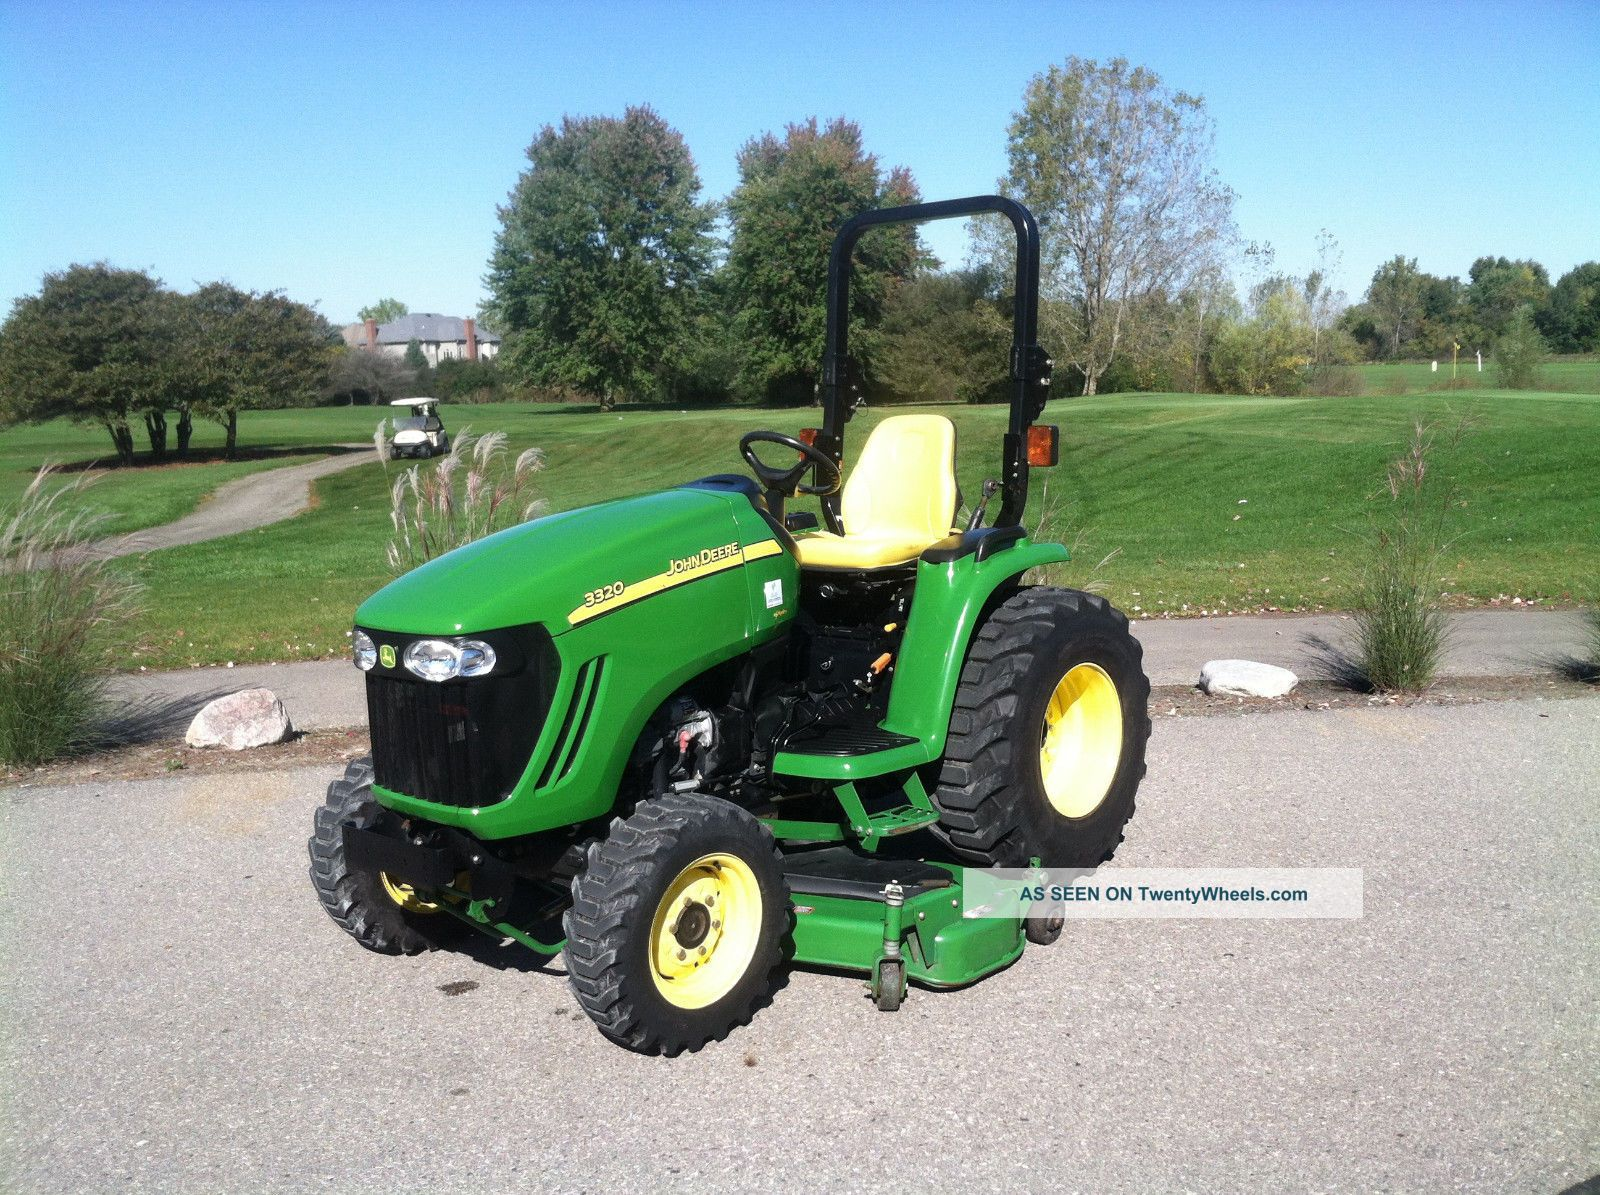 Small Tractors With Pto : John deere compact utility tractor deck pt